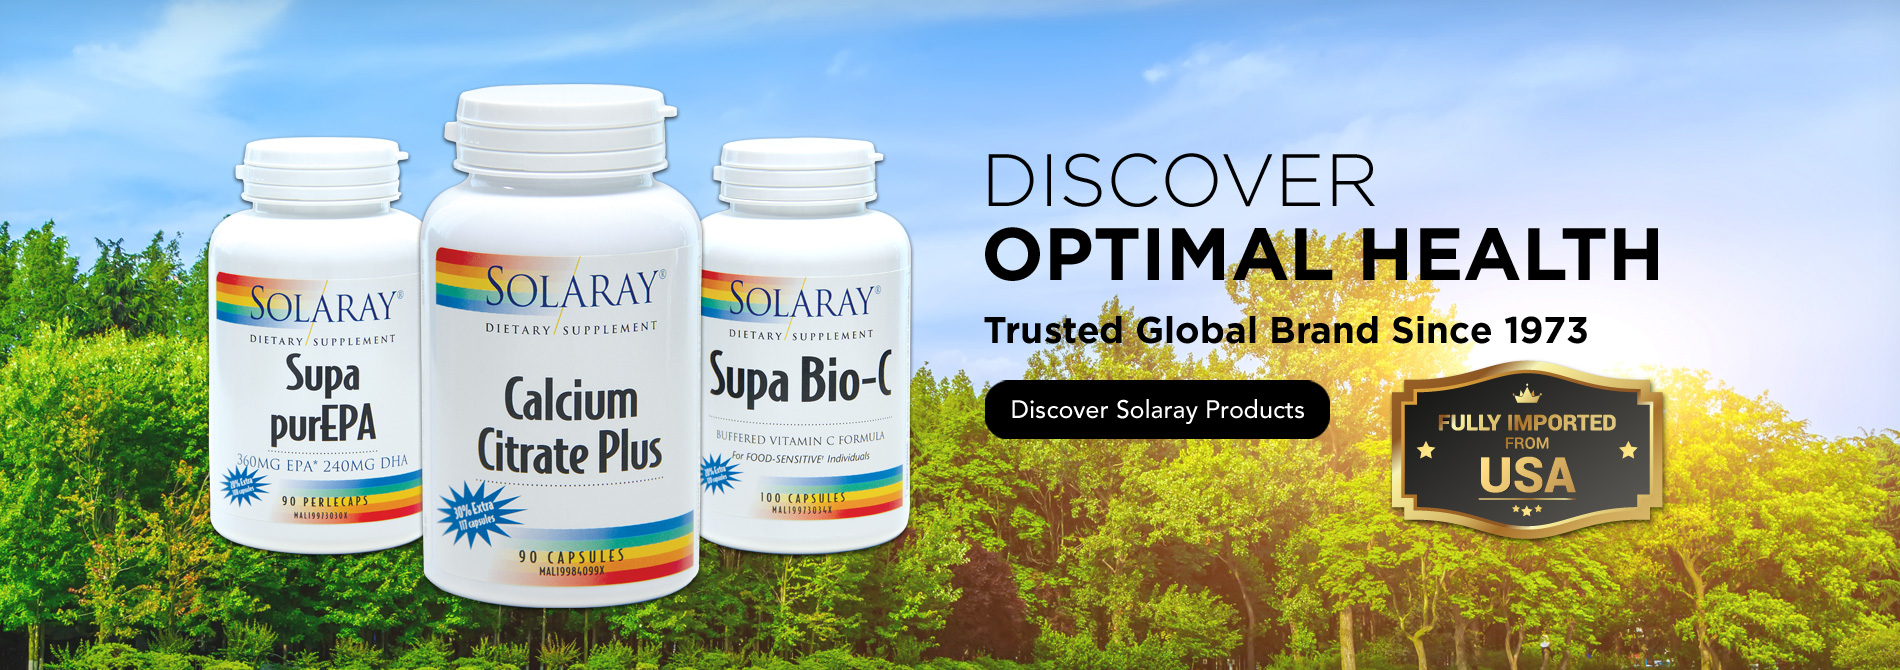 Discover Solaray Products